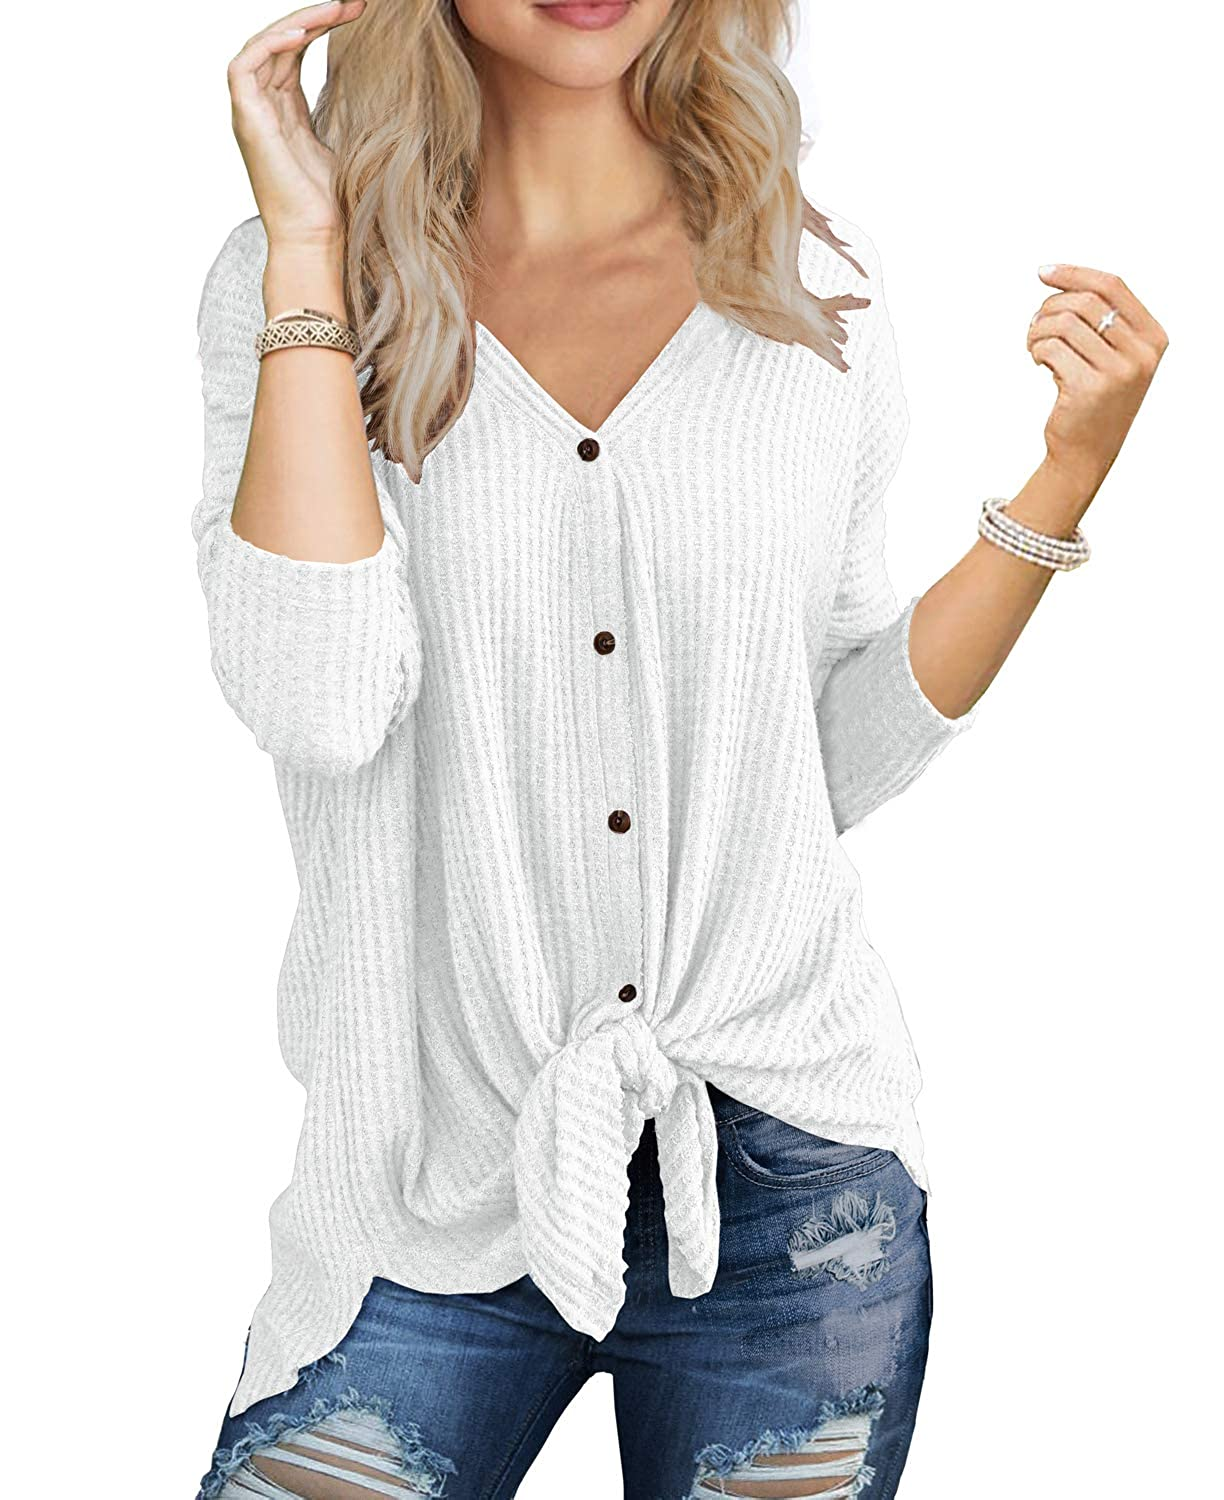 cd7415df4c65 IWOLLENCE Womens Waffle Knit Tunic Blouse Tie Knot Henley Tops Loose  Fitting Bat Wing Plain Shirts at Amazon Women's Clothing store: